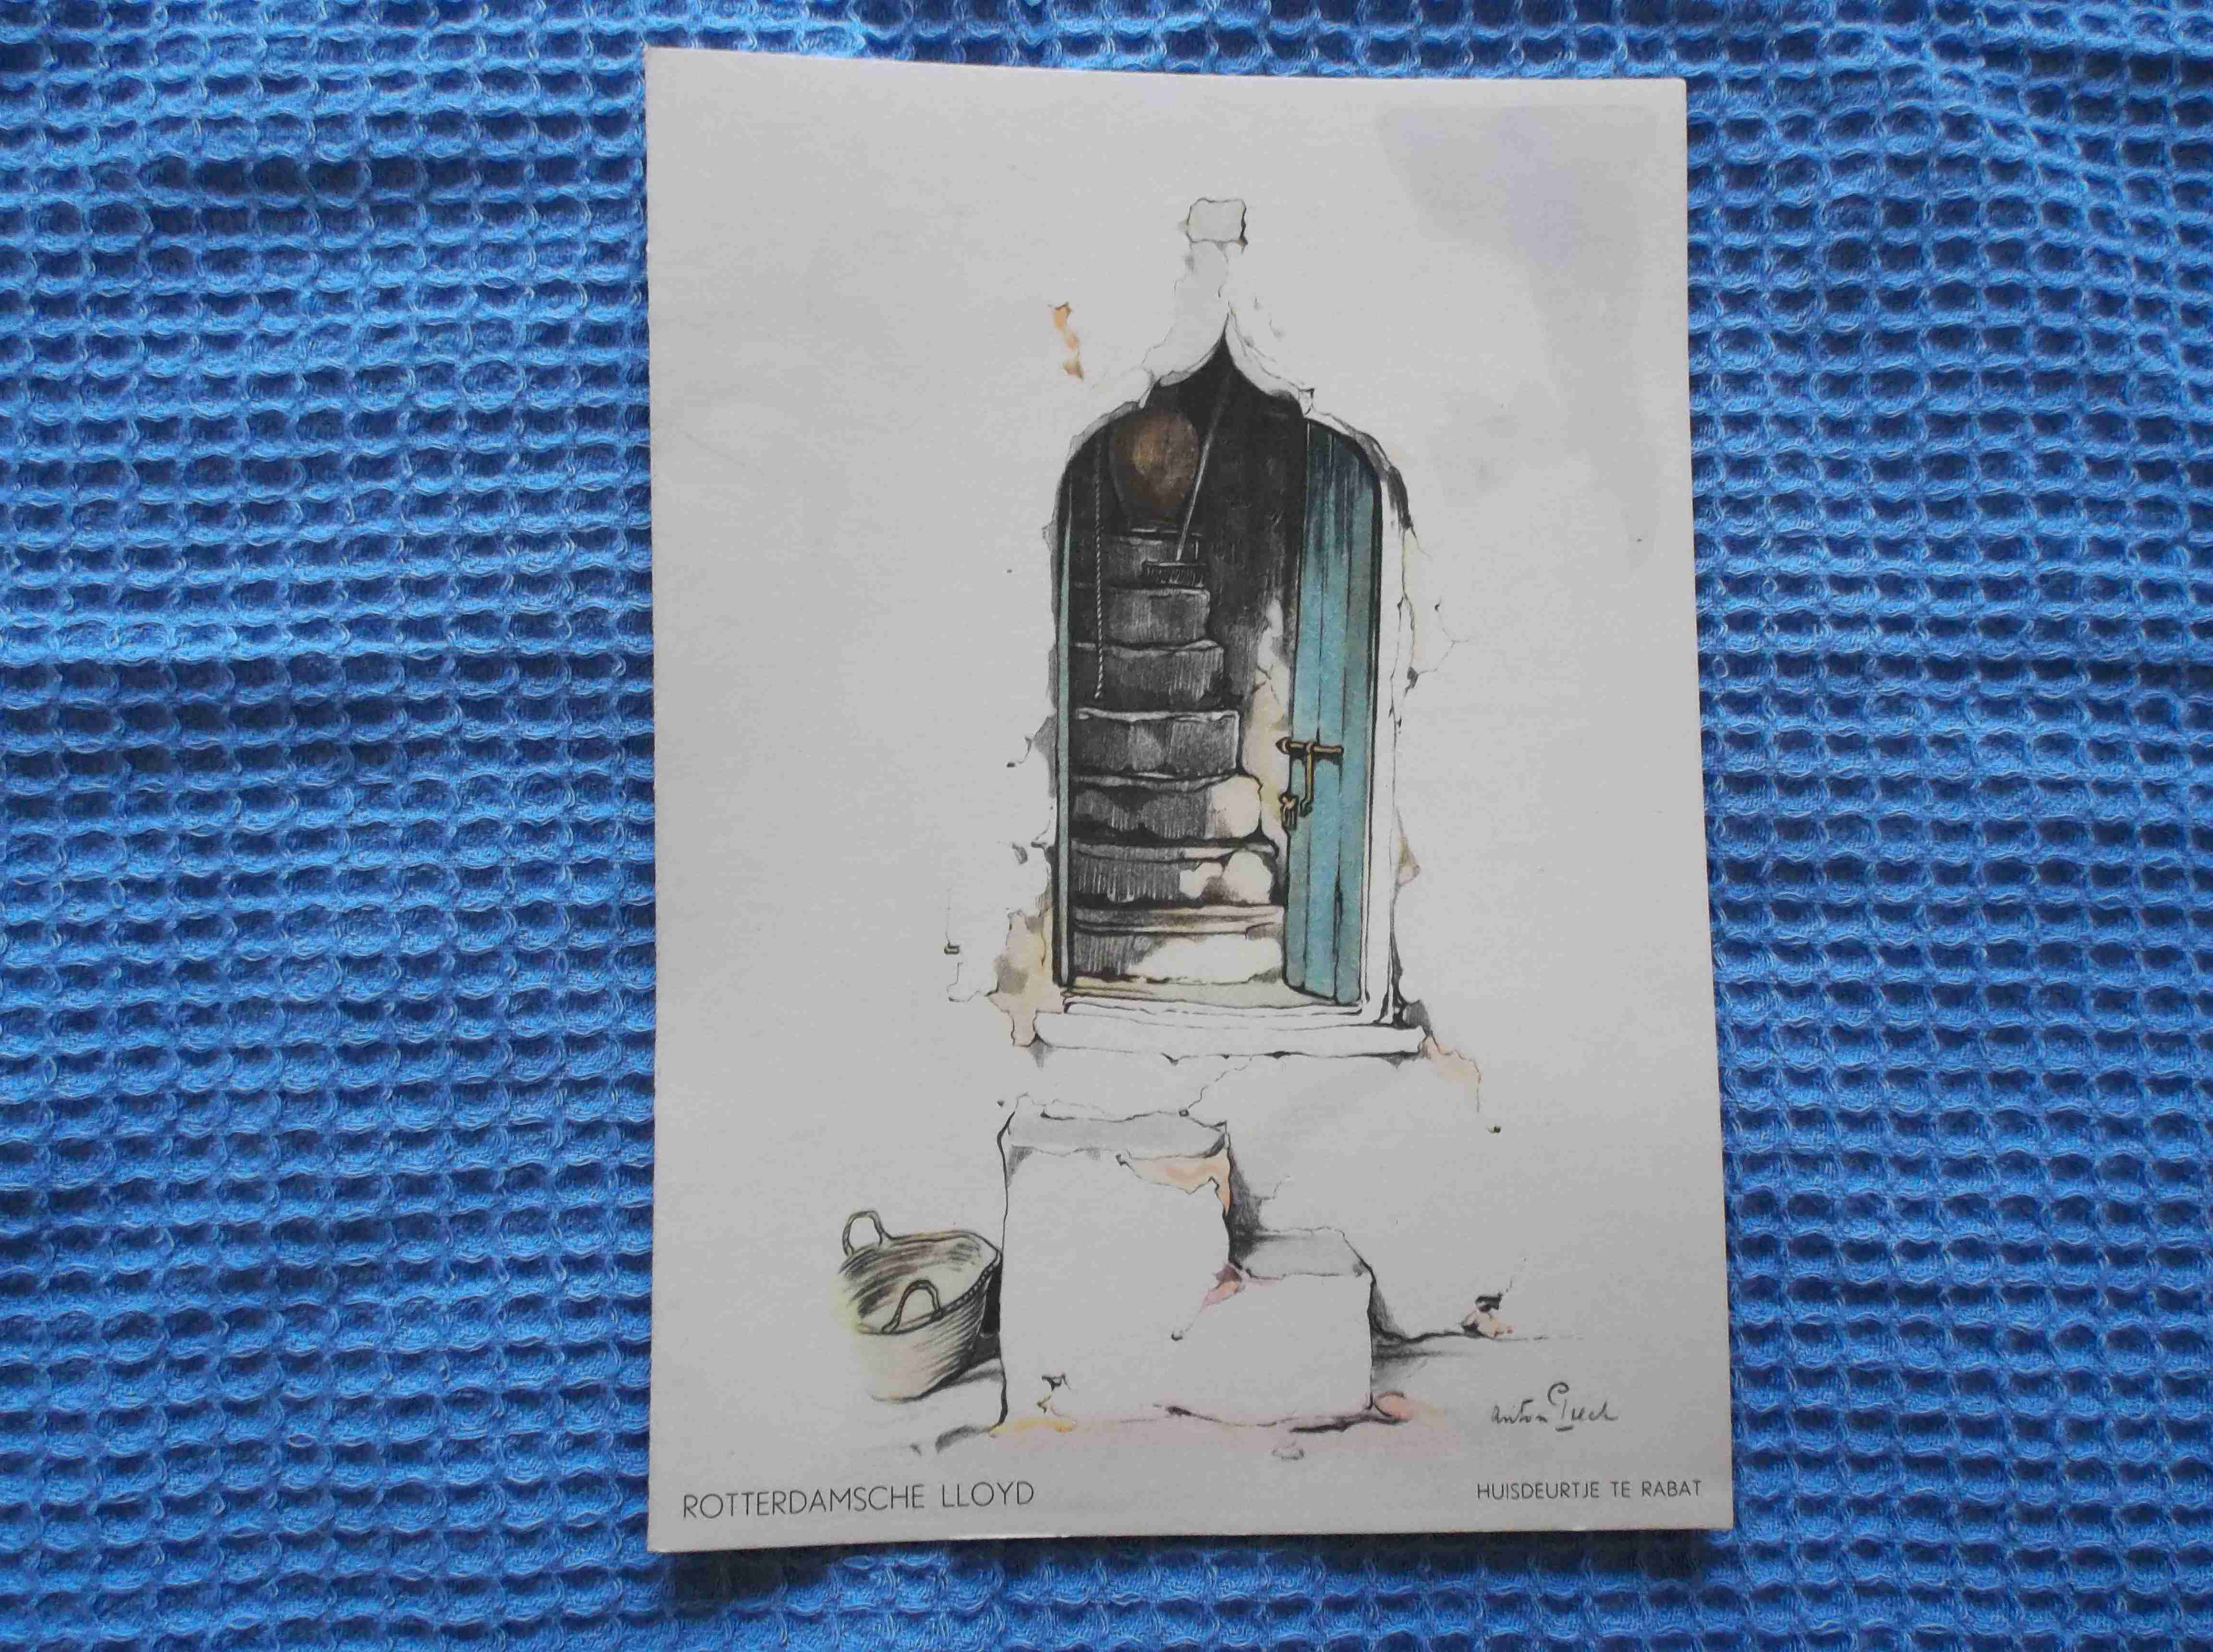 RARE SHIPS LUNCHEON MENU FROM THE LLOYD TRIESTINO VESSEL THE TMV WILLEM RUYS DATED 1949